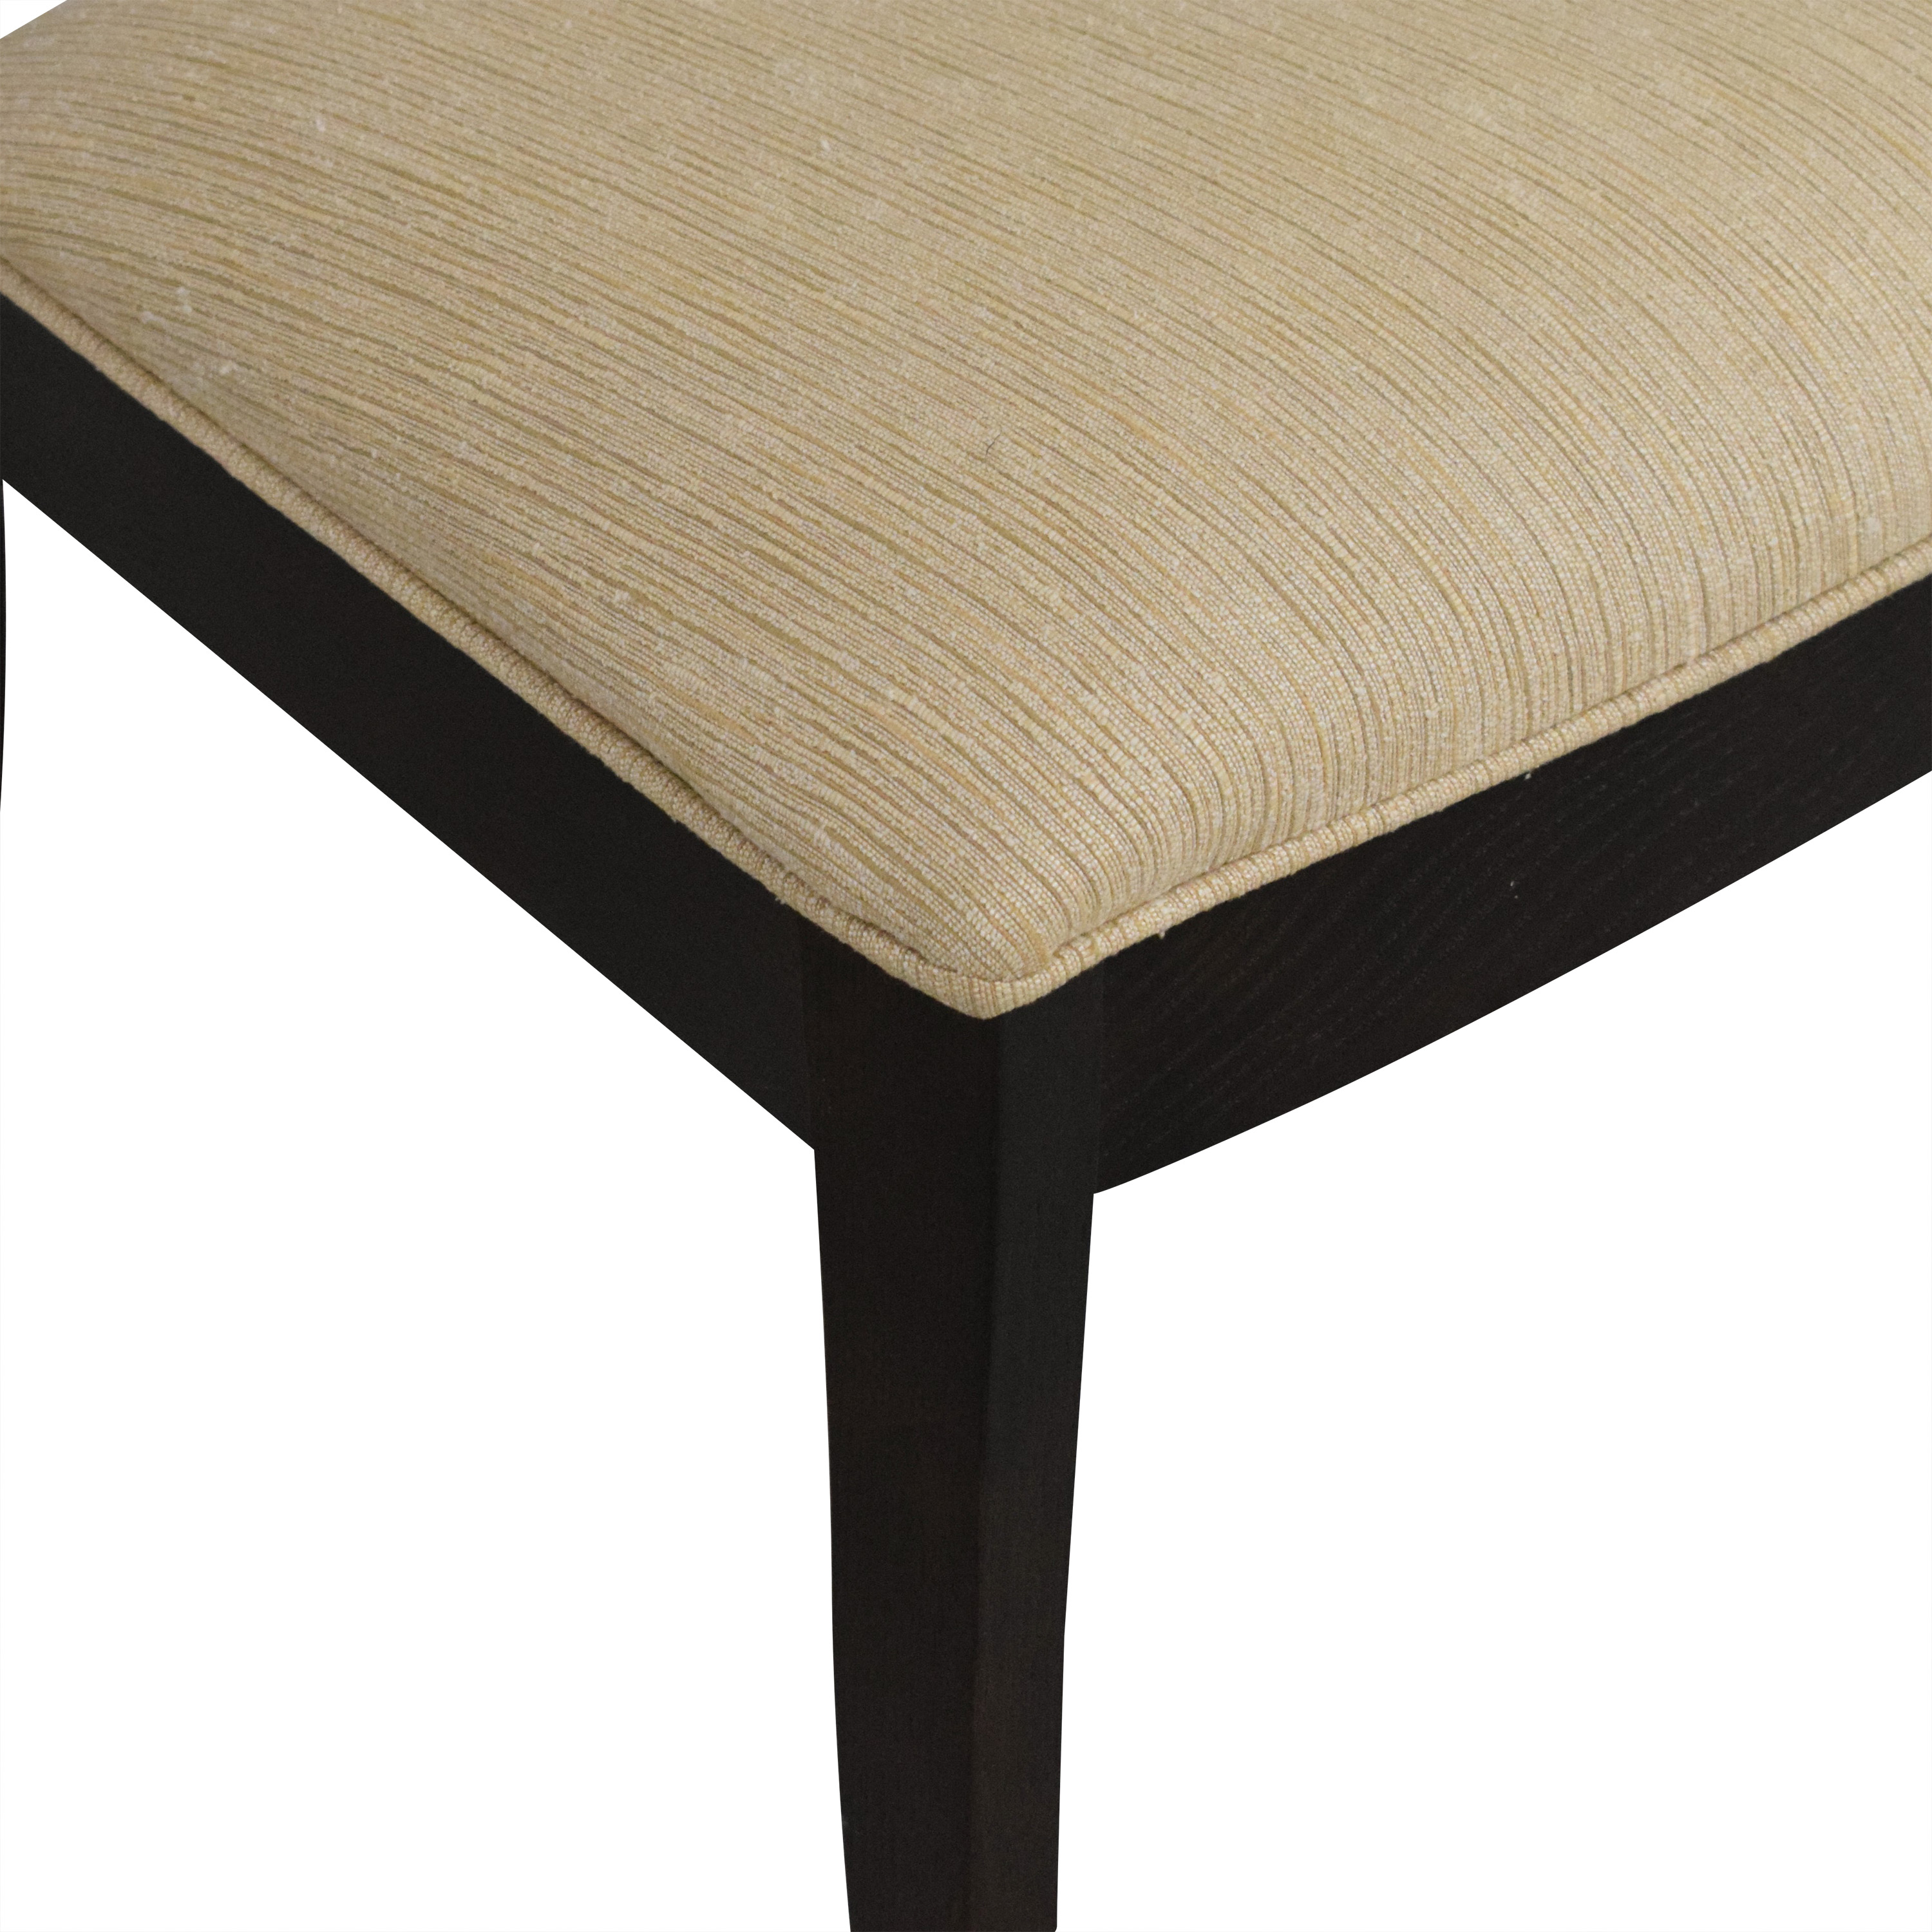 Stanley Furniture Stanley Slat Dining Chairs discount